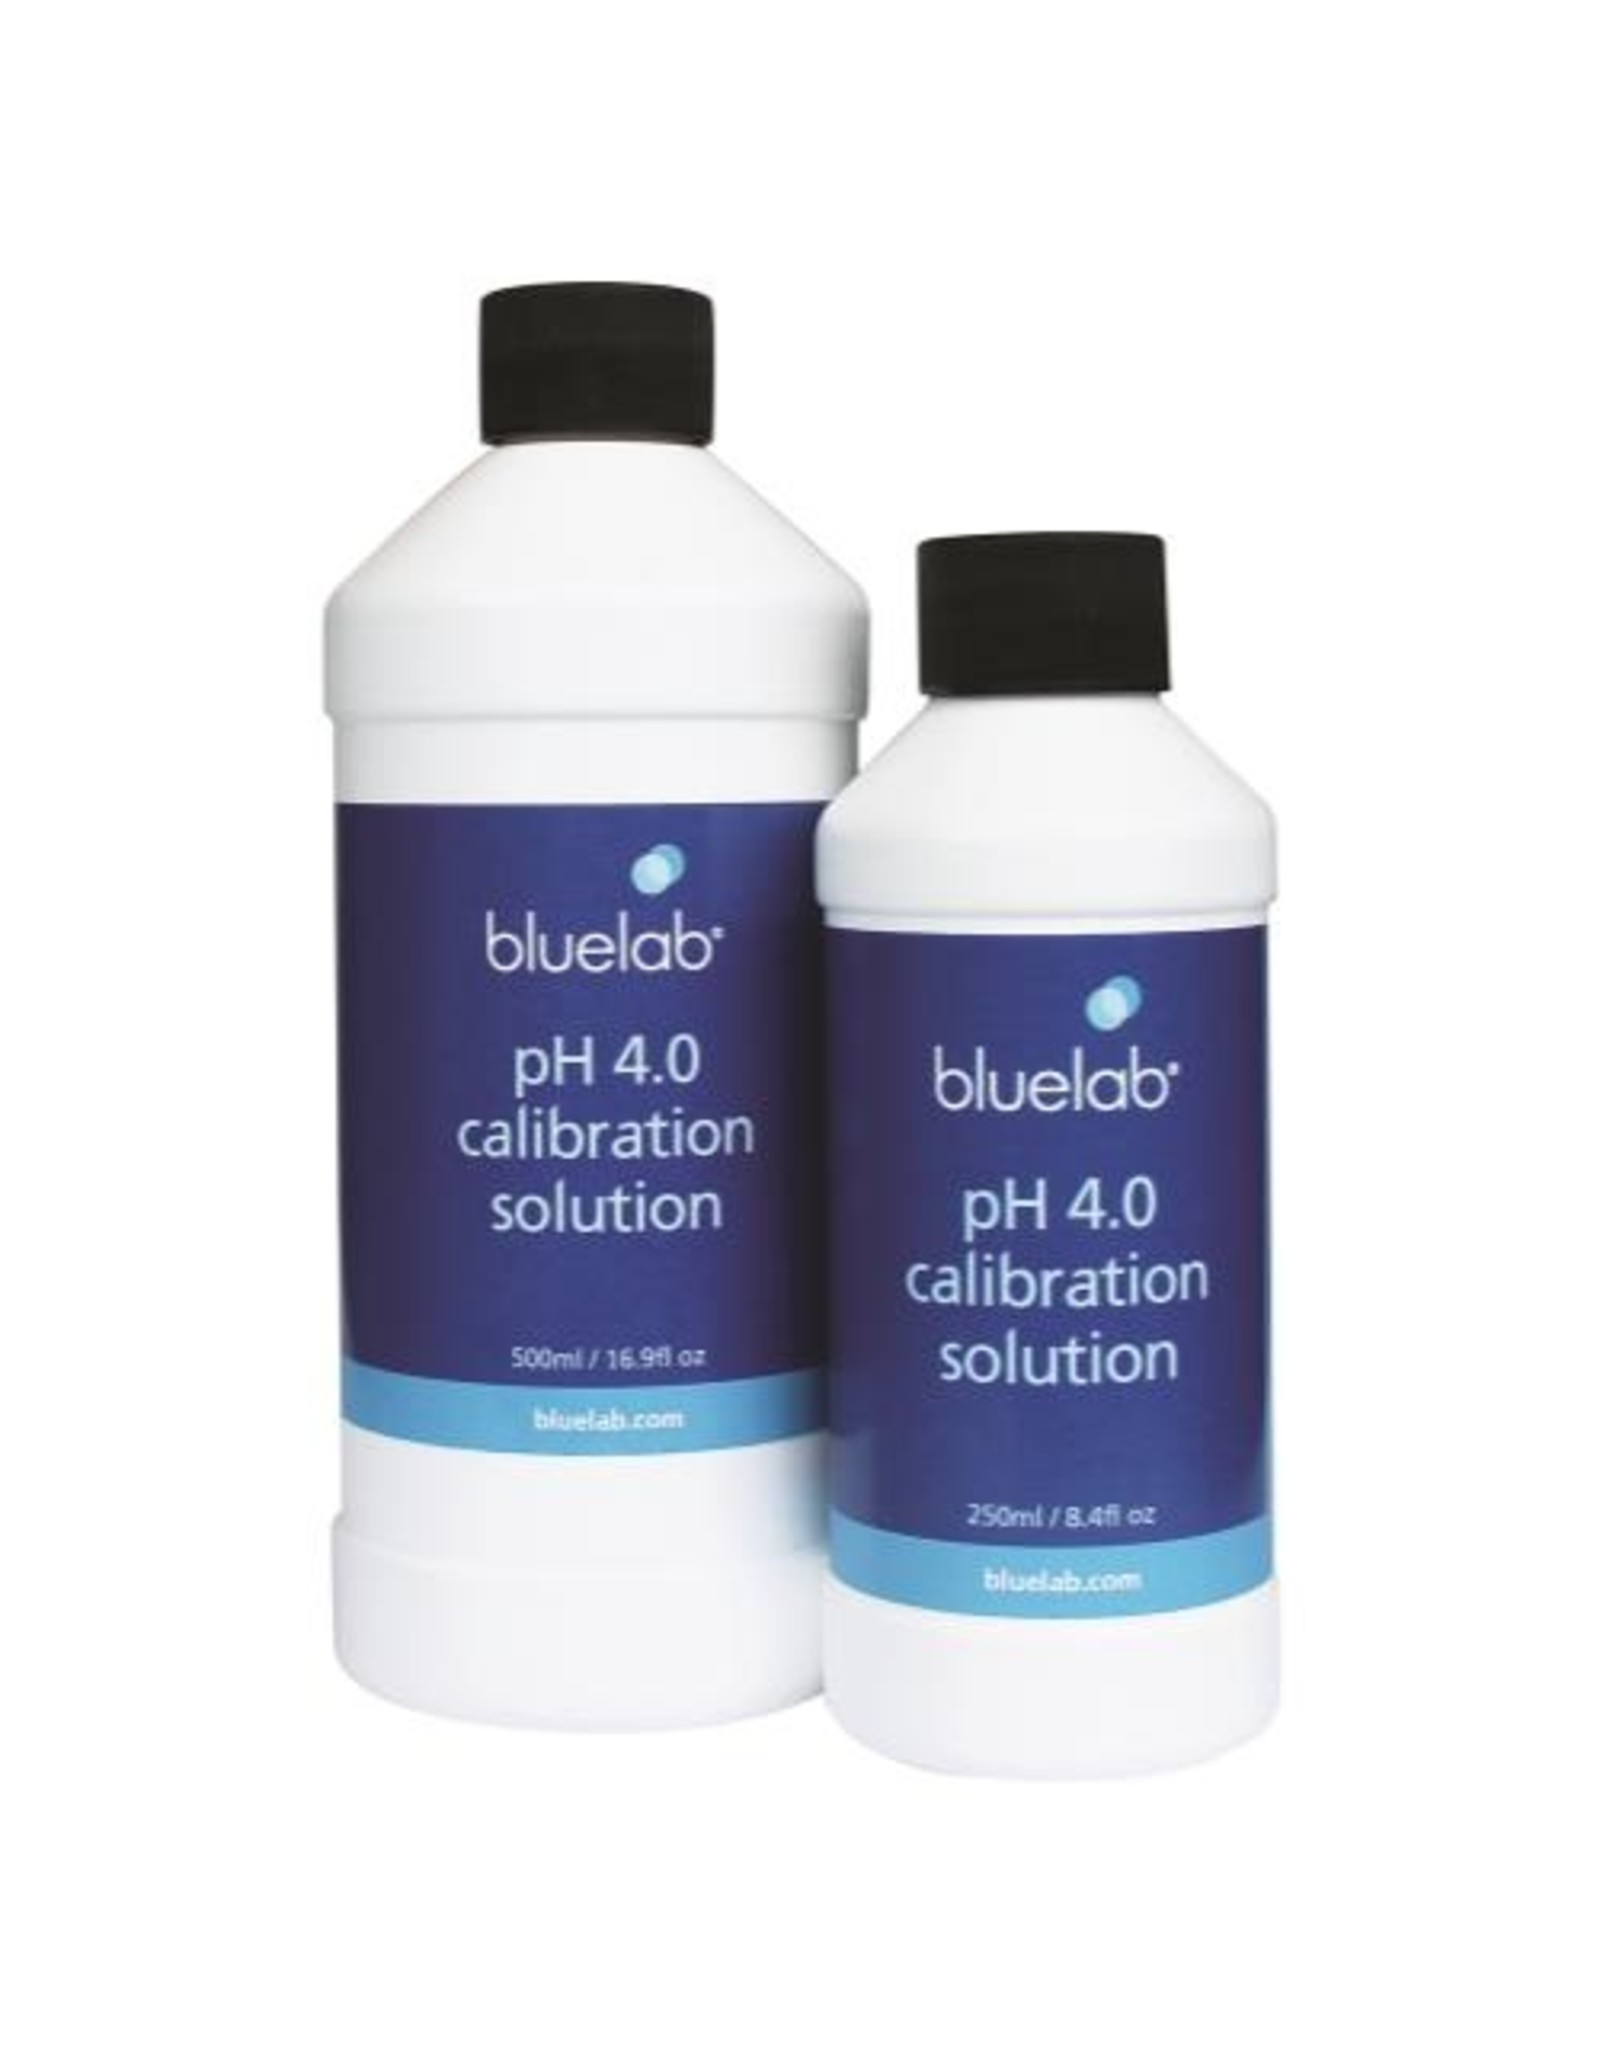 Bluelab Bluelab pH 4.0 Calibration Solution 250 ml